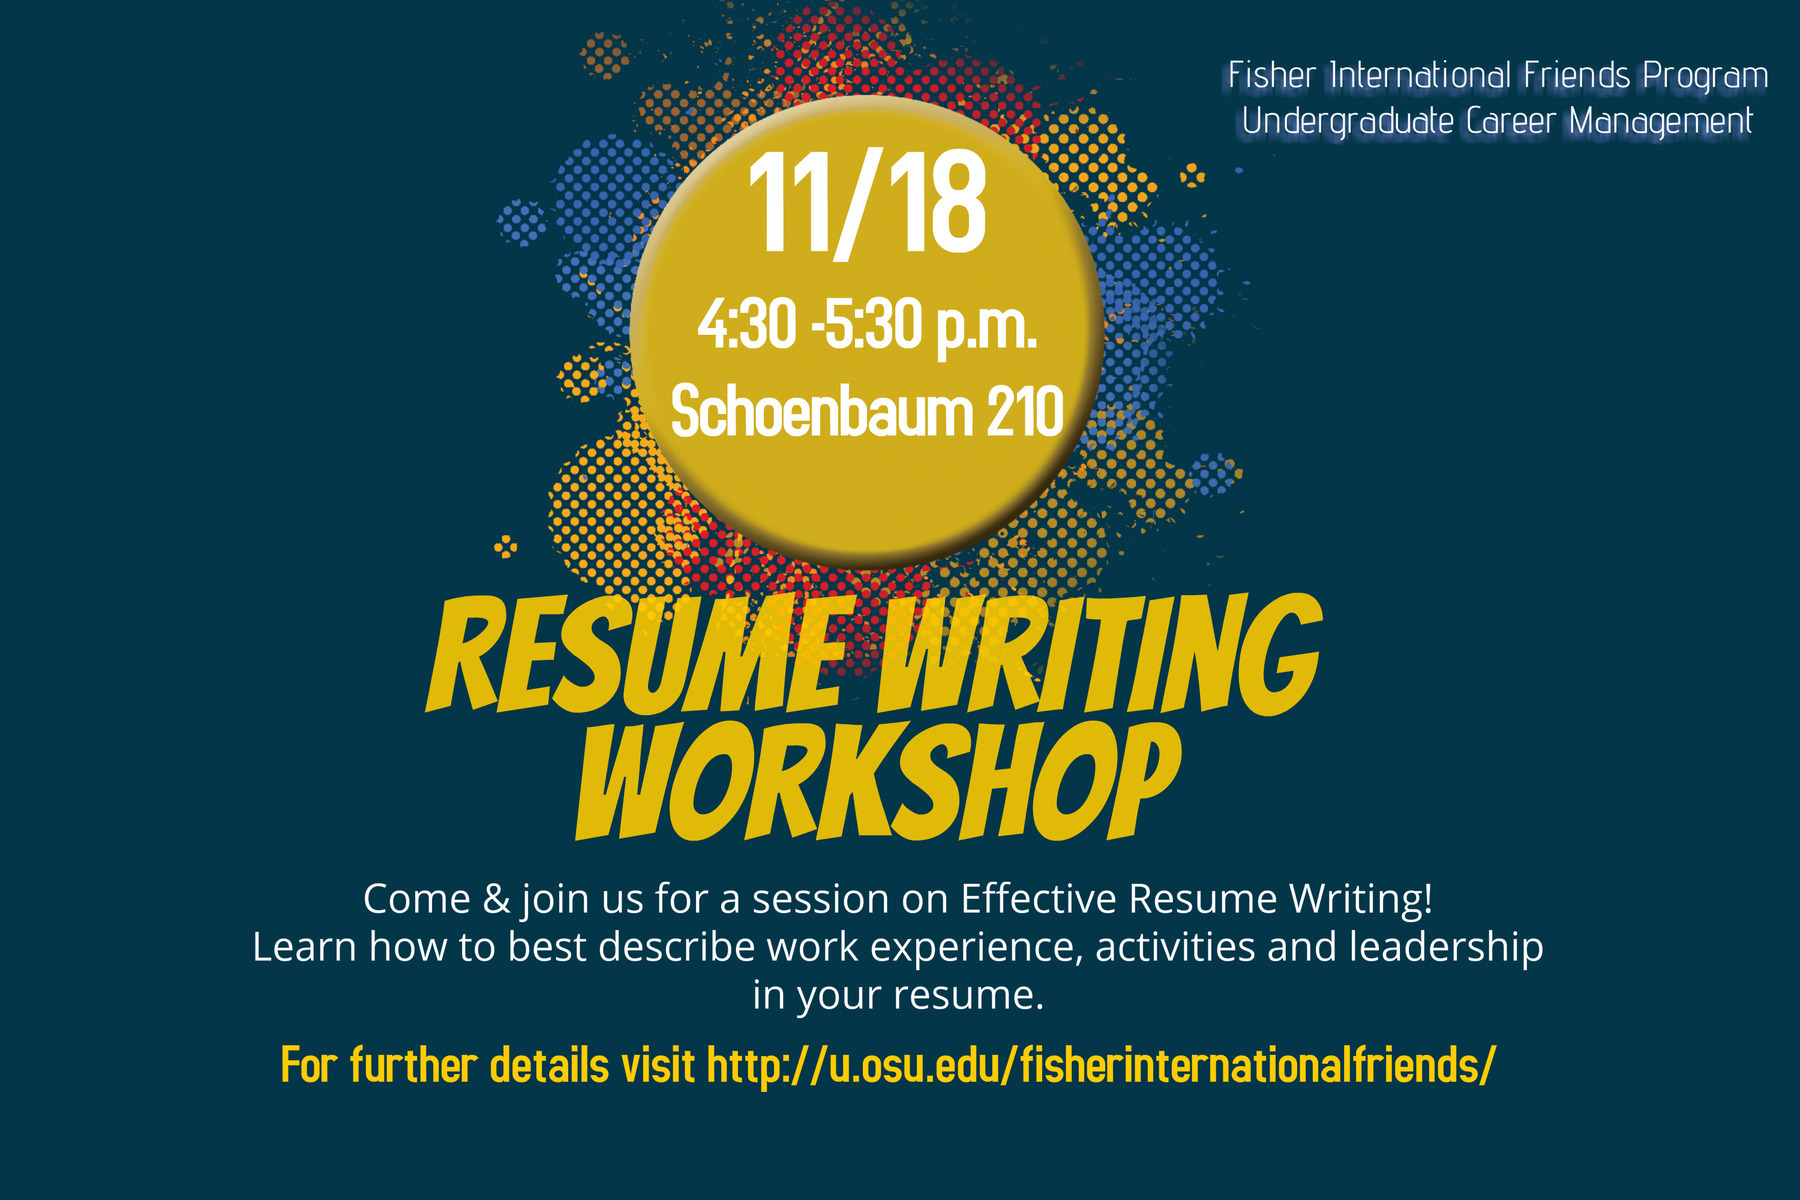 November 18th Resume Workshop sponsored by Fisher International